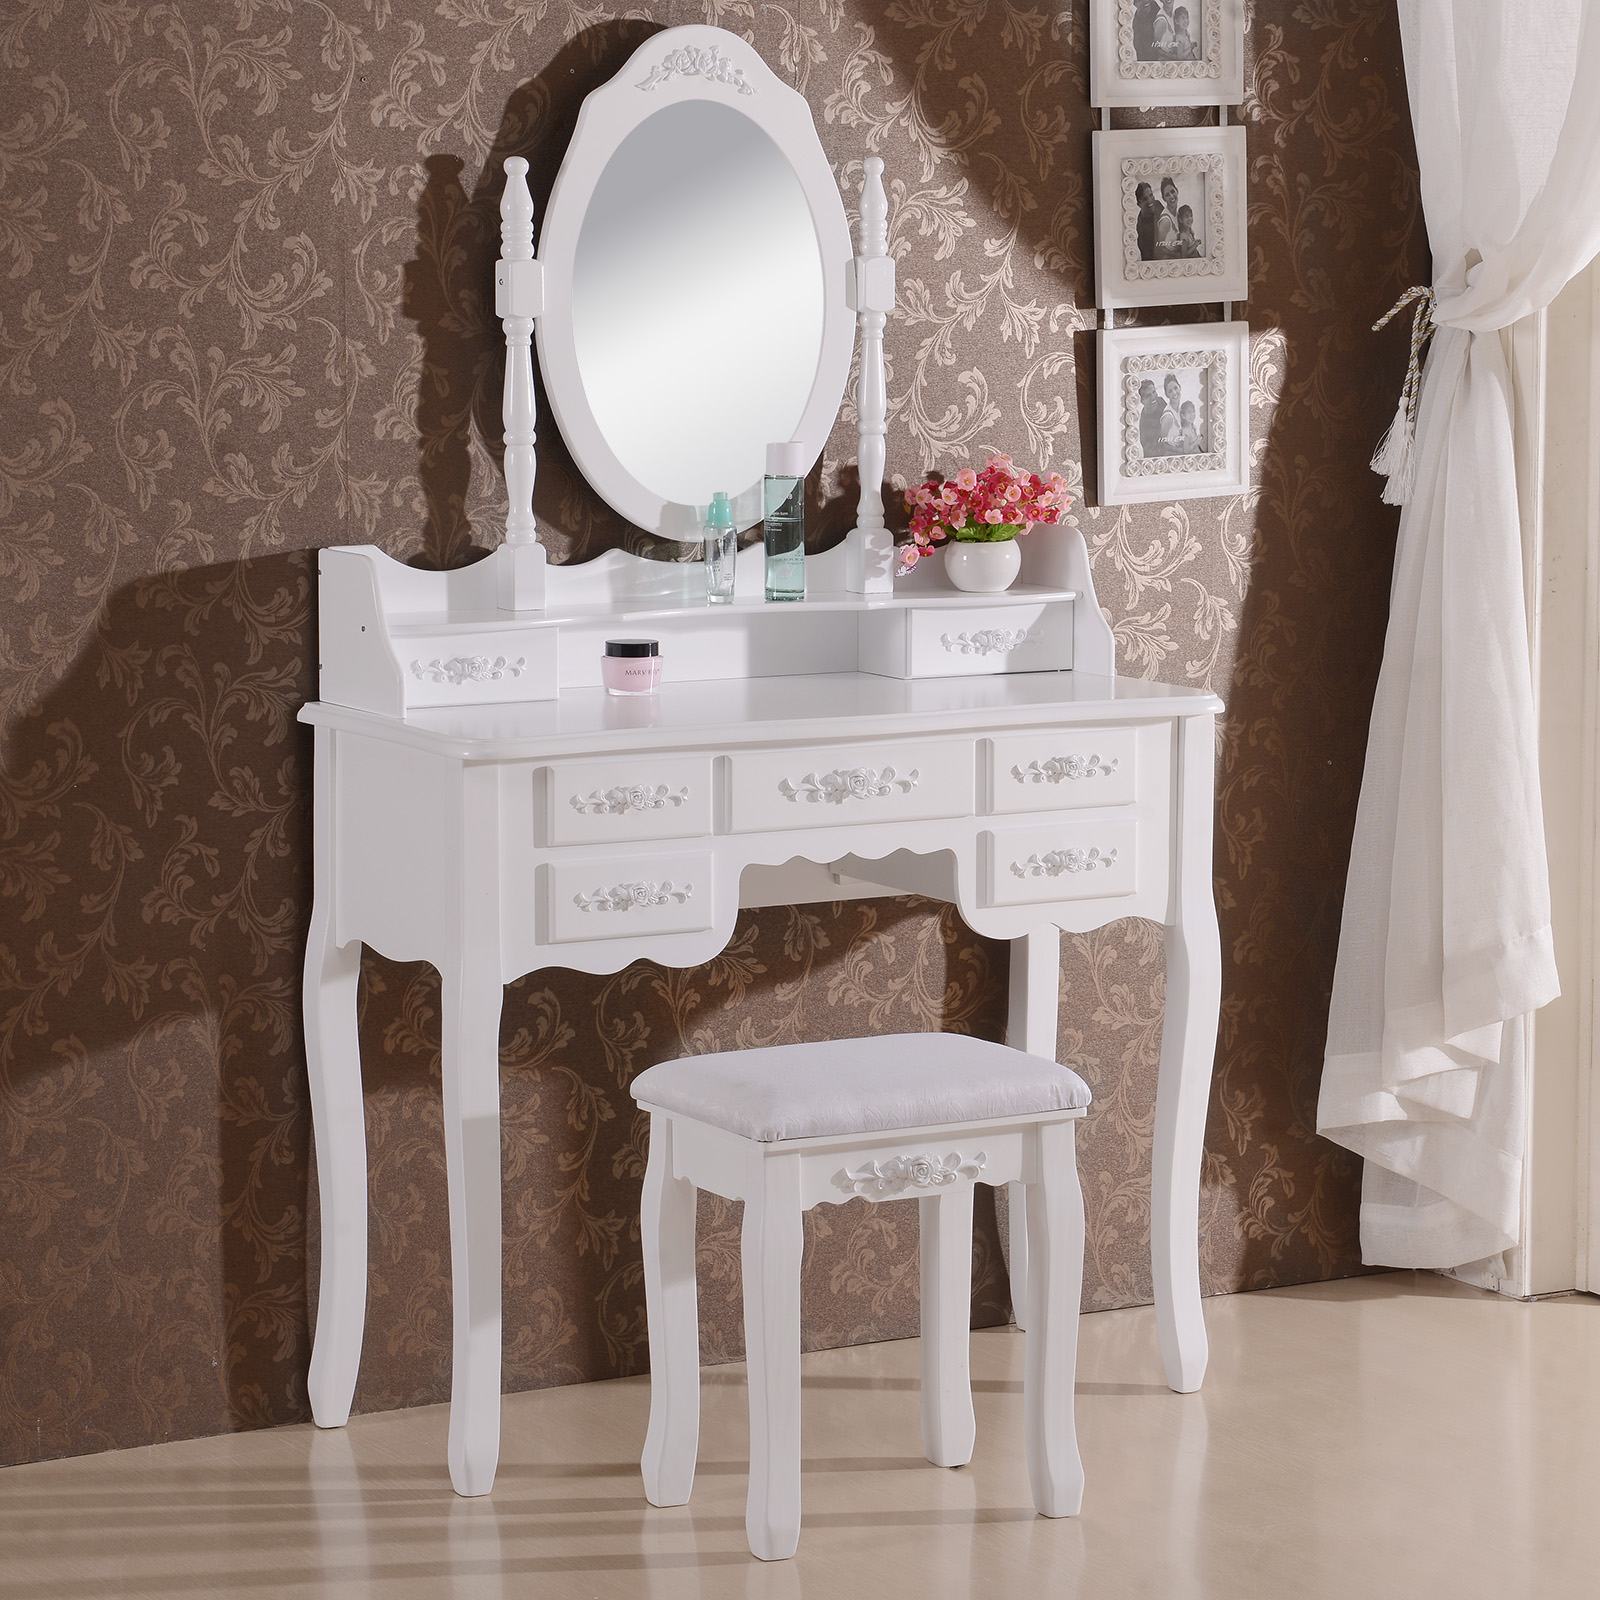 coiffeuse table de maquillage avec miroir et tabouret 6 tailles blanc f131 ebay. Black Bedroom Furniture Sets. Home Design Ideas